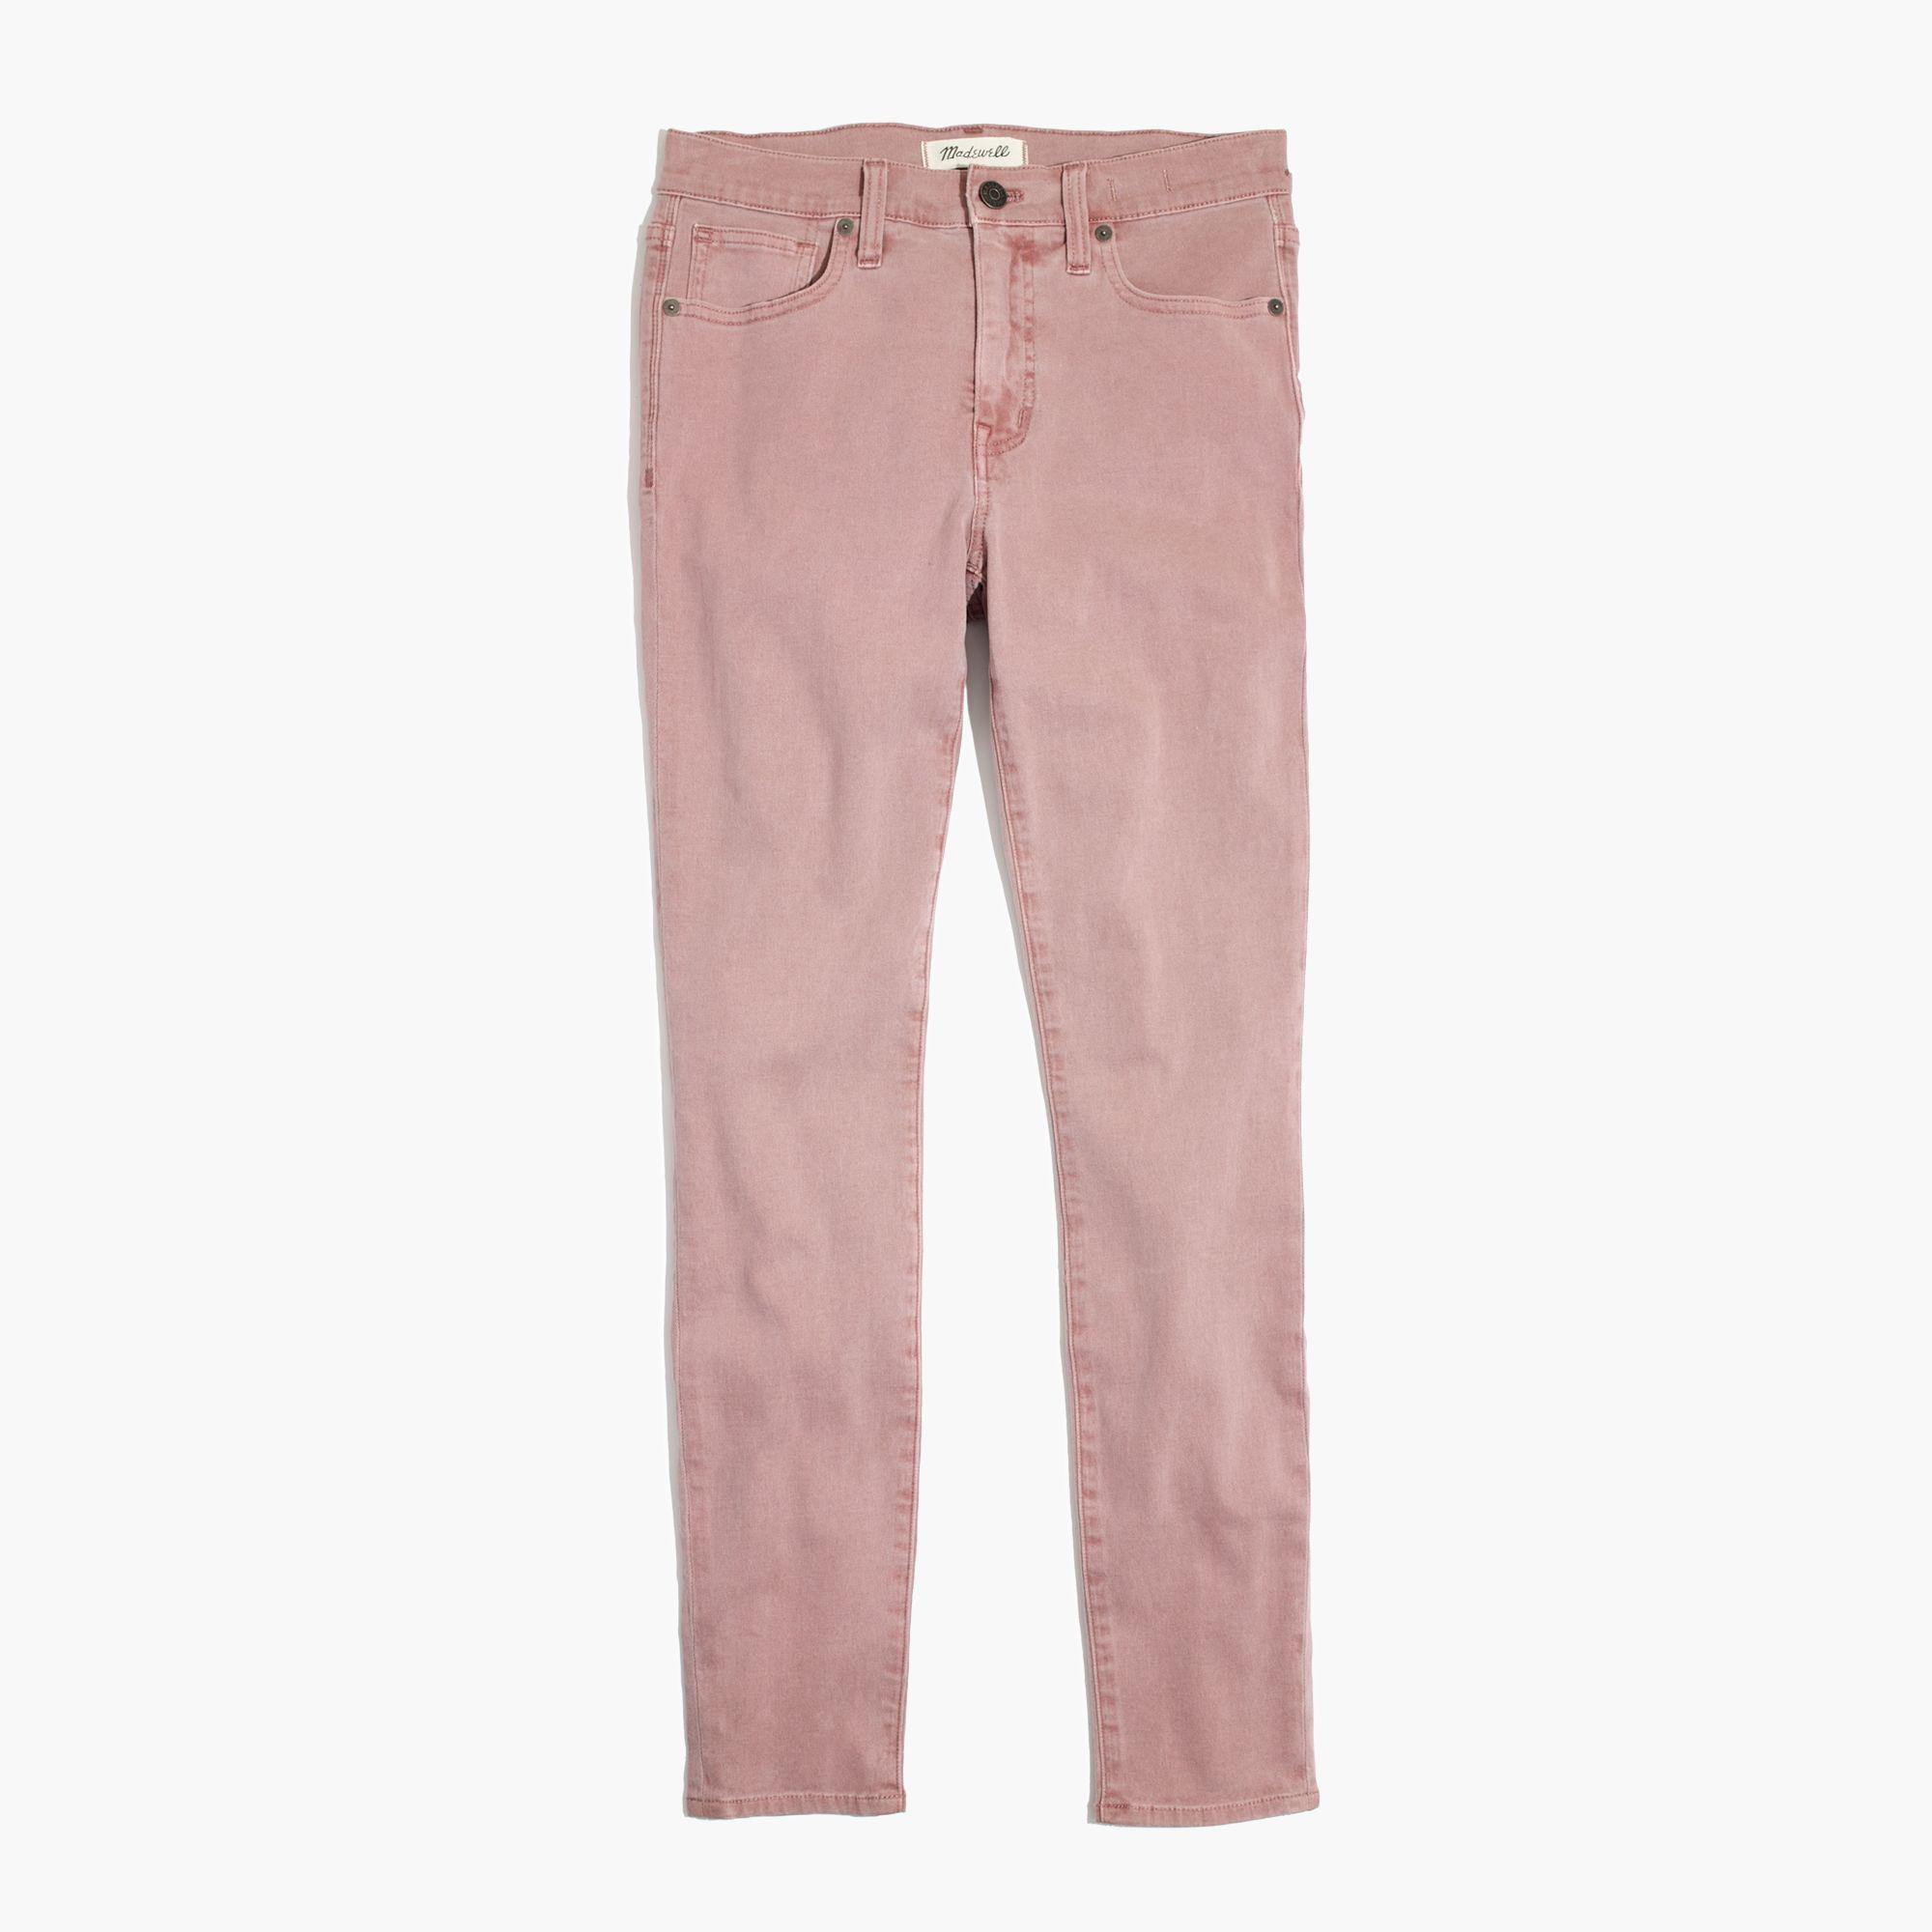 "Madewell Denim 9"" High-rise Skinny Crop Jeans: Garment-dyed Edition in Pink"